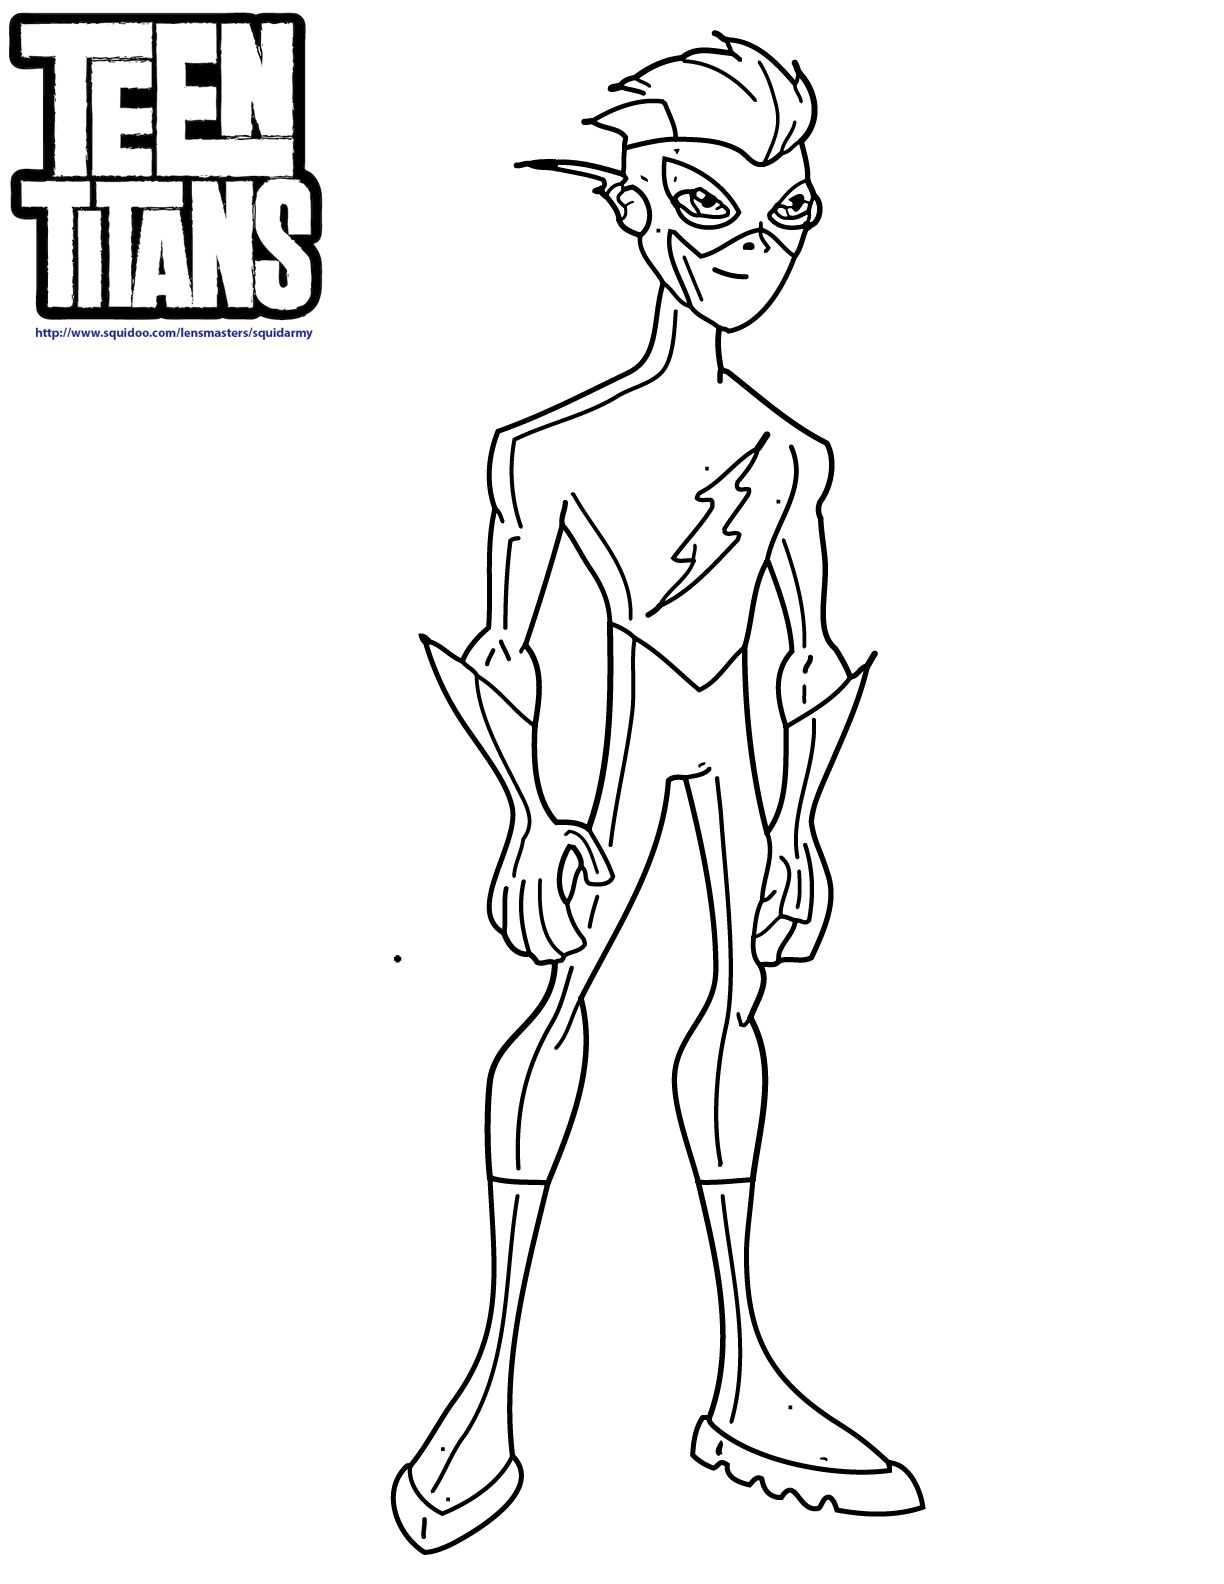 Teen Titans Kid Flash Coloring Pages | Coloring 4 Kids: DC Super ...